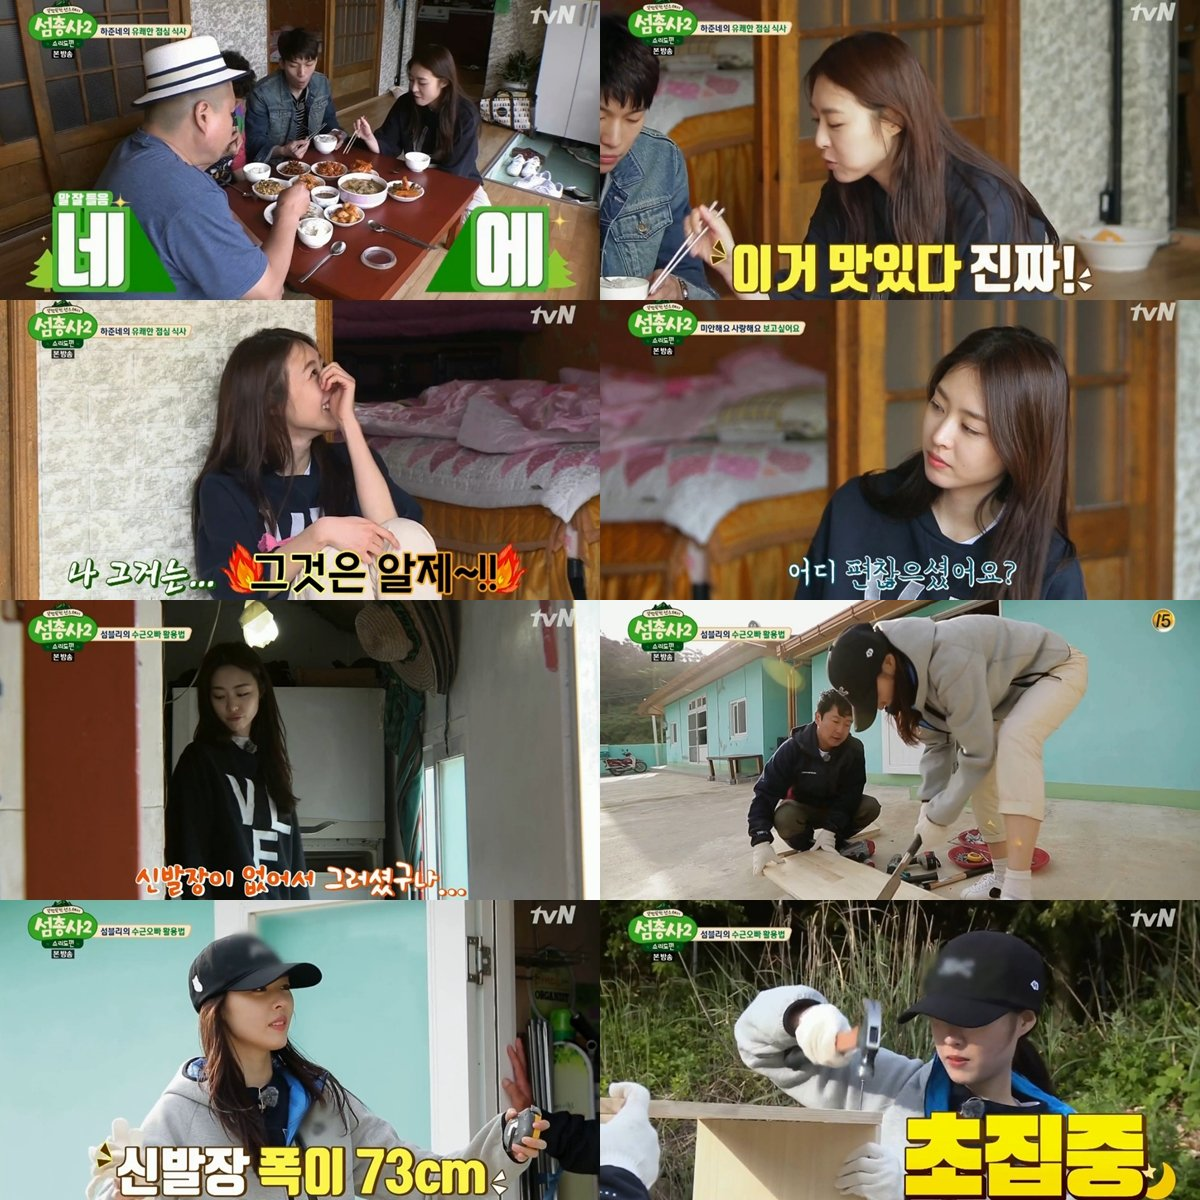 Lee Yeon Hee proved that she is a hard worker on her reality show 'SumChongSa2'!  📺'섬총사2' ('SumChongSa2') : Every Monday at 11PM KST via Olive & tvN channel   #이연희#LeeYeonHee